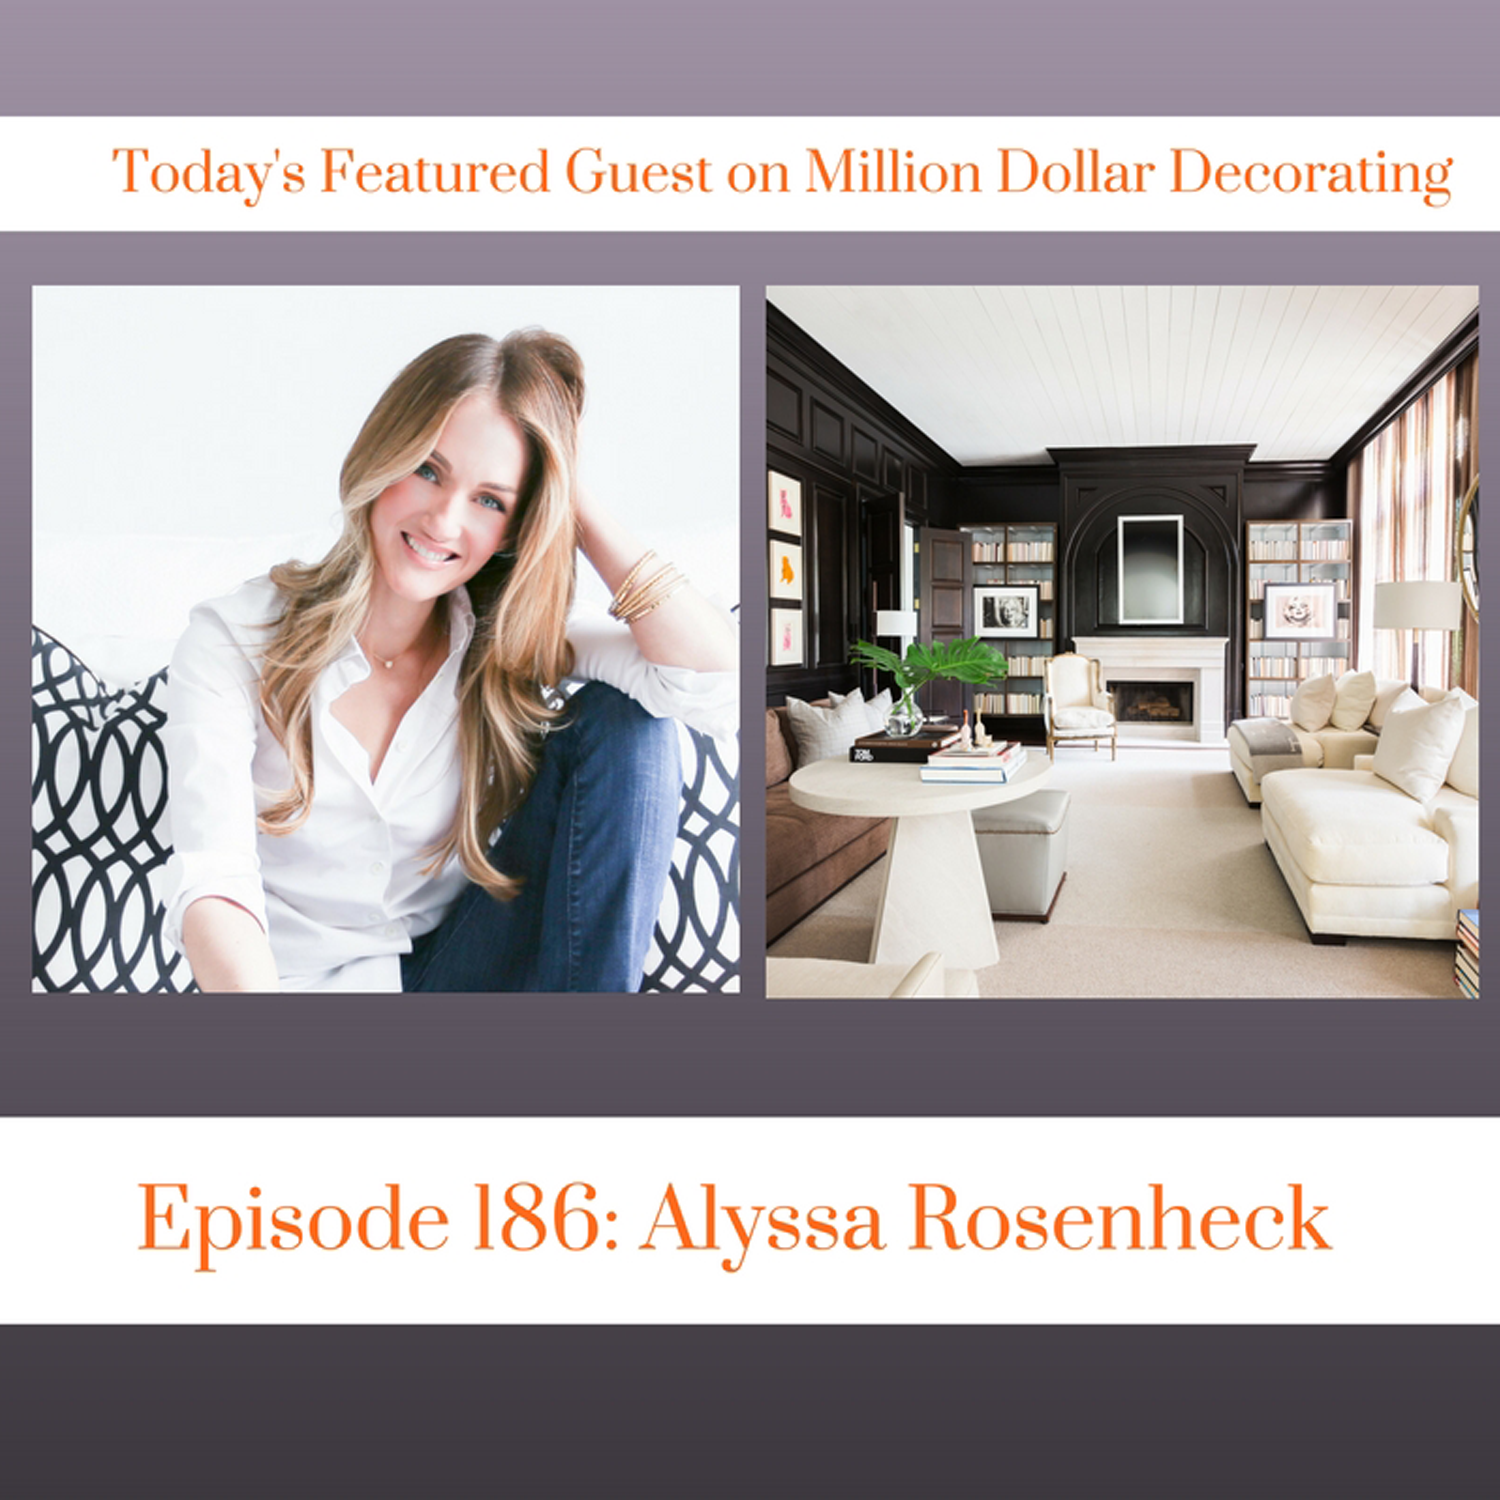 Alyssa Rosenheck with Million Dollar Decorating with James Swan Podcast Interview